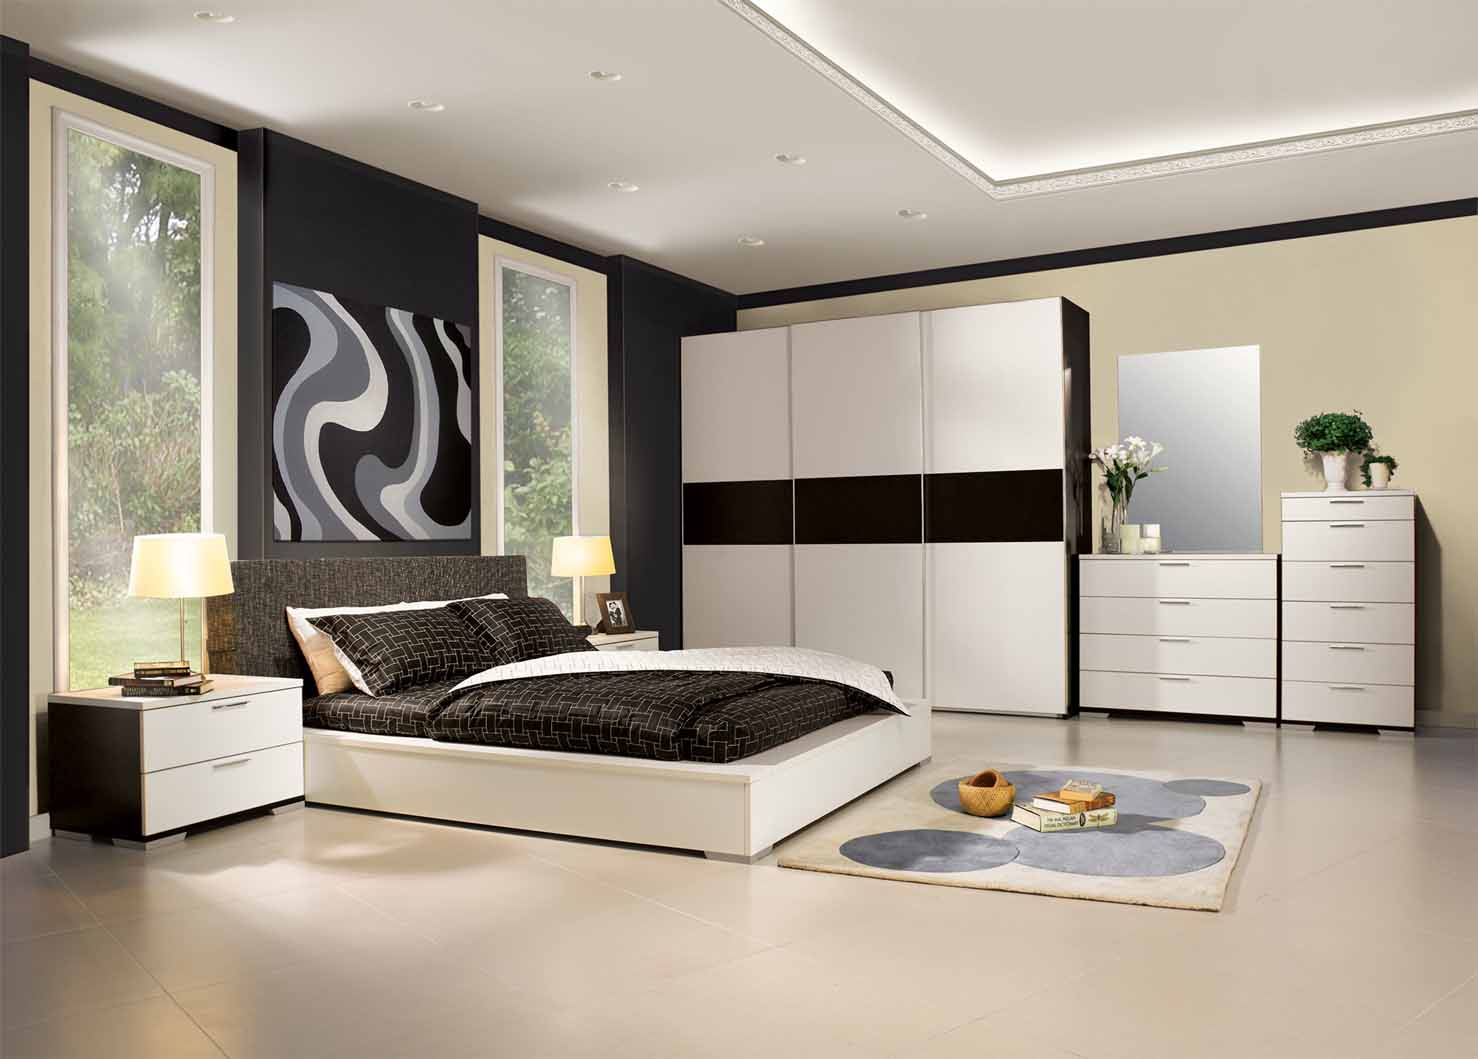 Modern black bedroom furniture popular interior house ideas for Black and white modern bedroom ideas